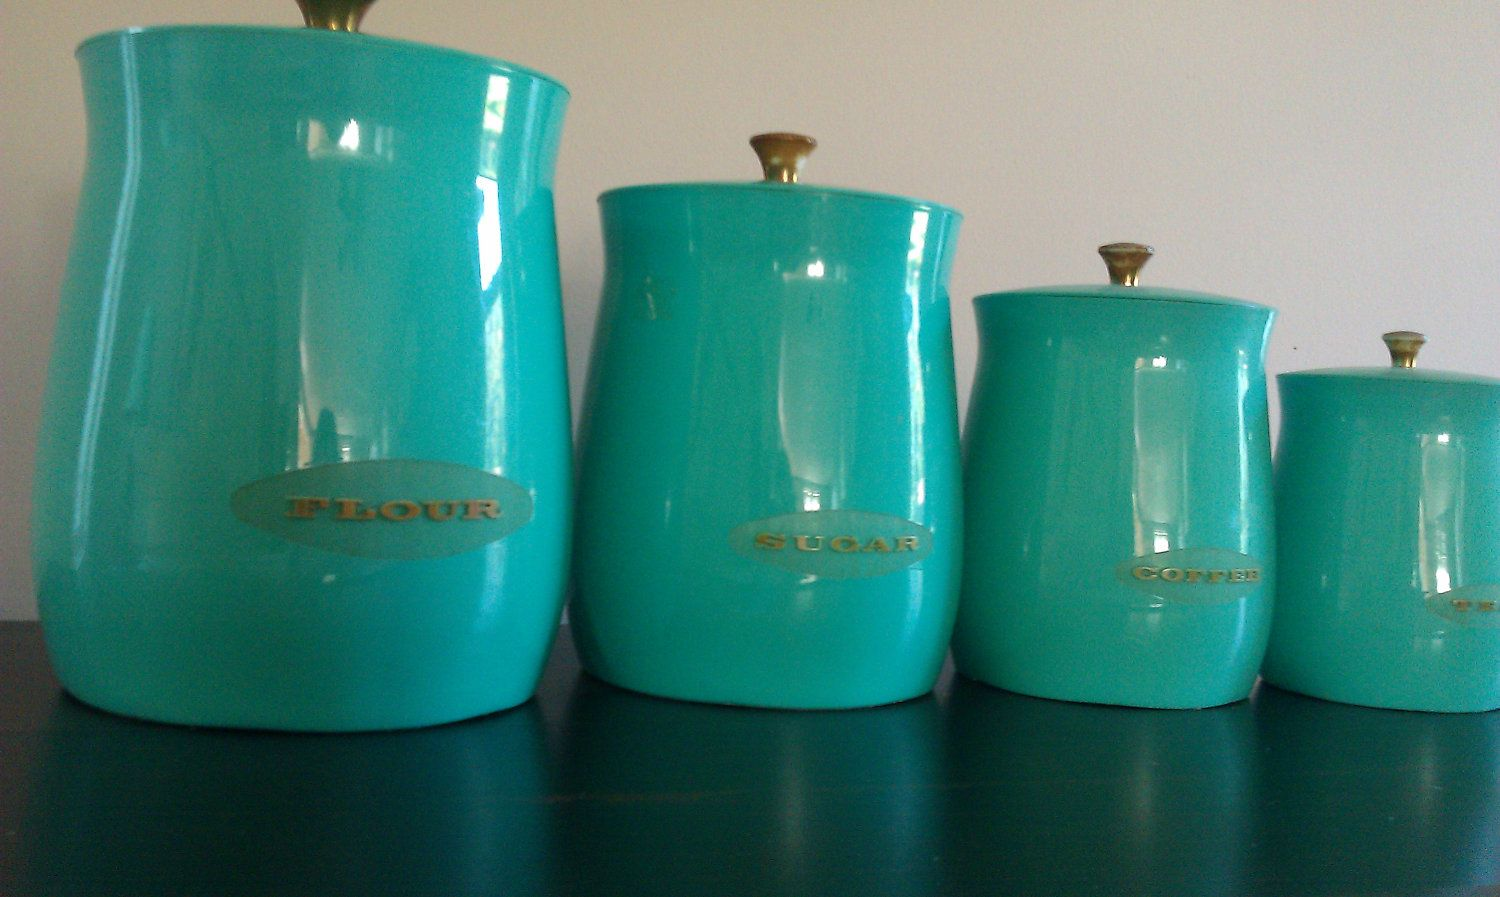 222 fifth peacock garden canisters set of 3 with lids new 222 fifth peacock garden canisters set of 3 with lids new turquoise gold canister sets dinnerware and porcelain